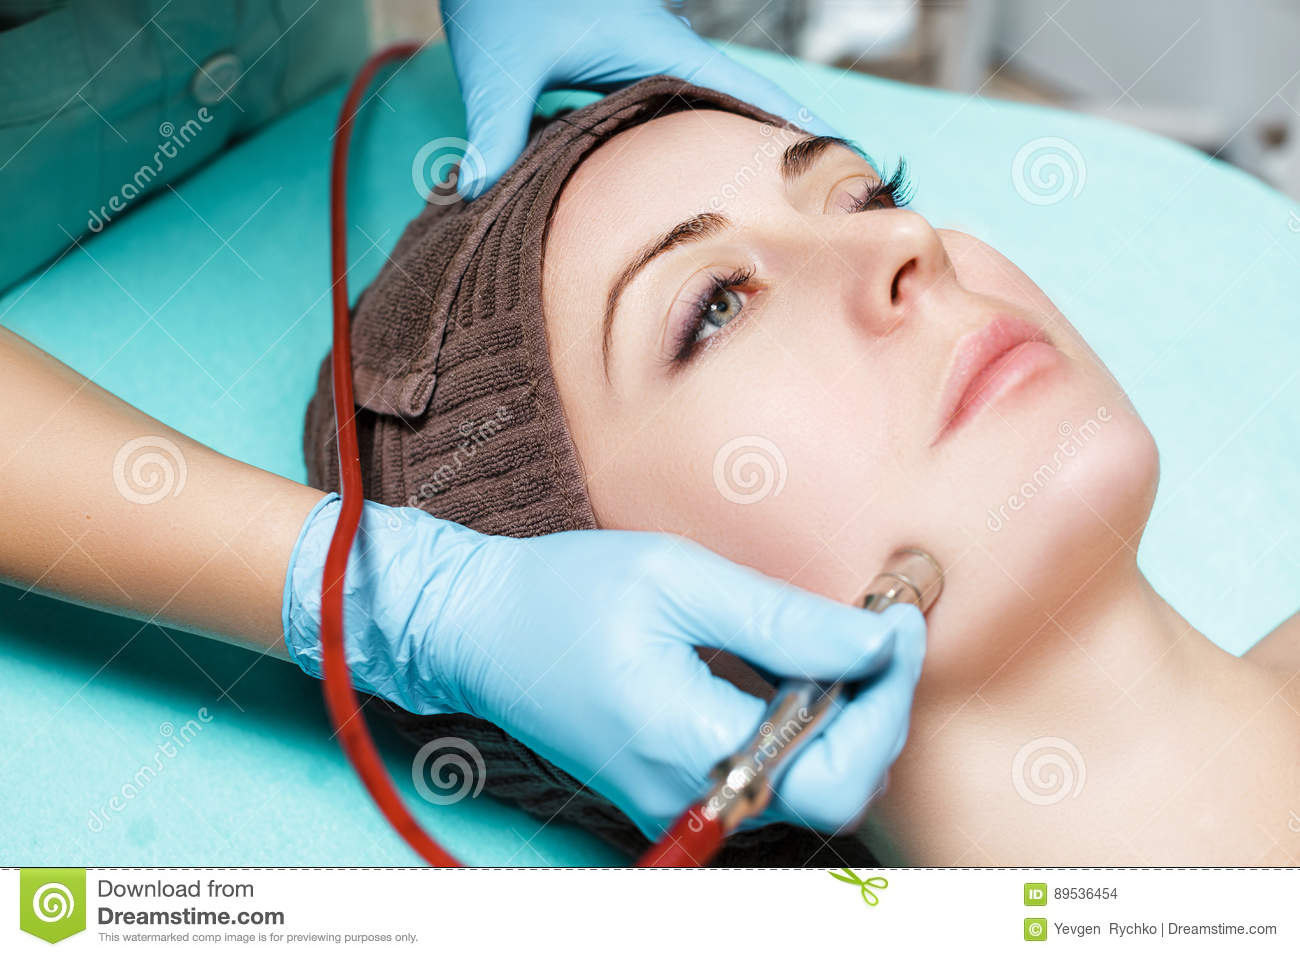 Mechanical cleansing of the face: what it is, description of the procedure, contraindications 25